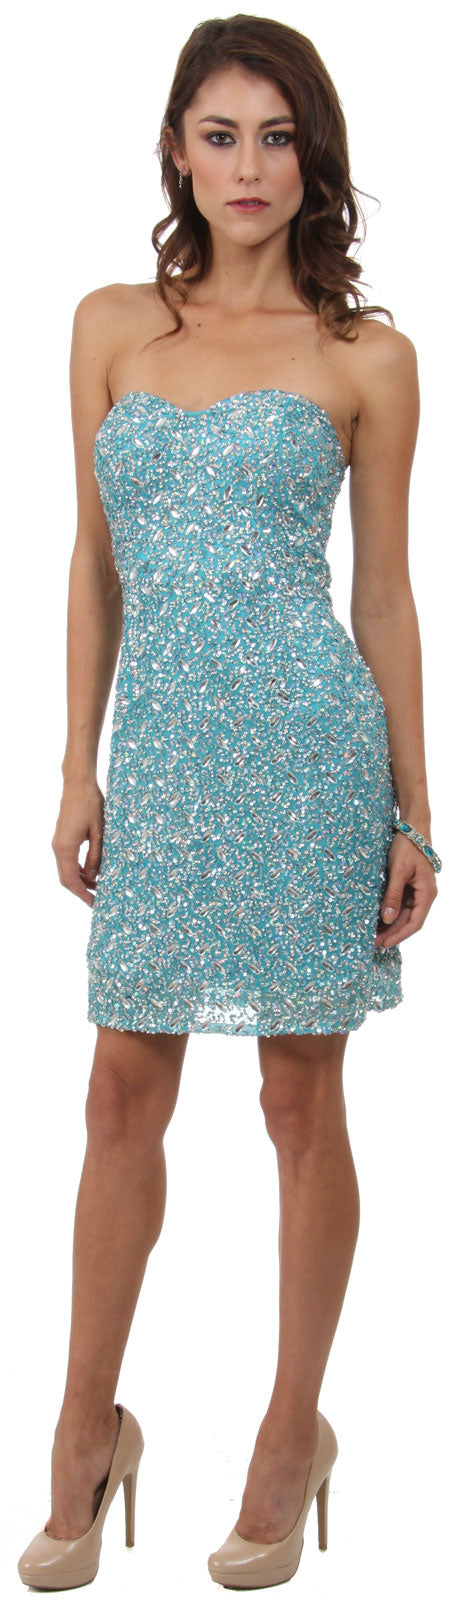 Image of Strapless Sweetheart Neck Short Beaded Prom Dress  in Turquoise